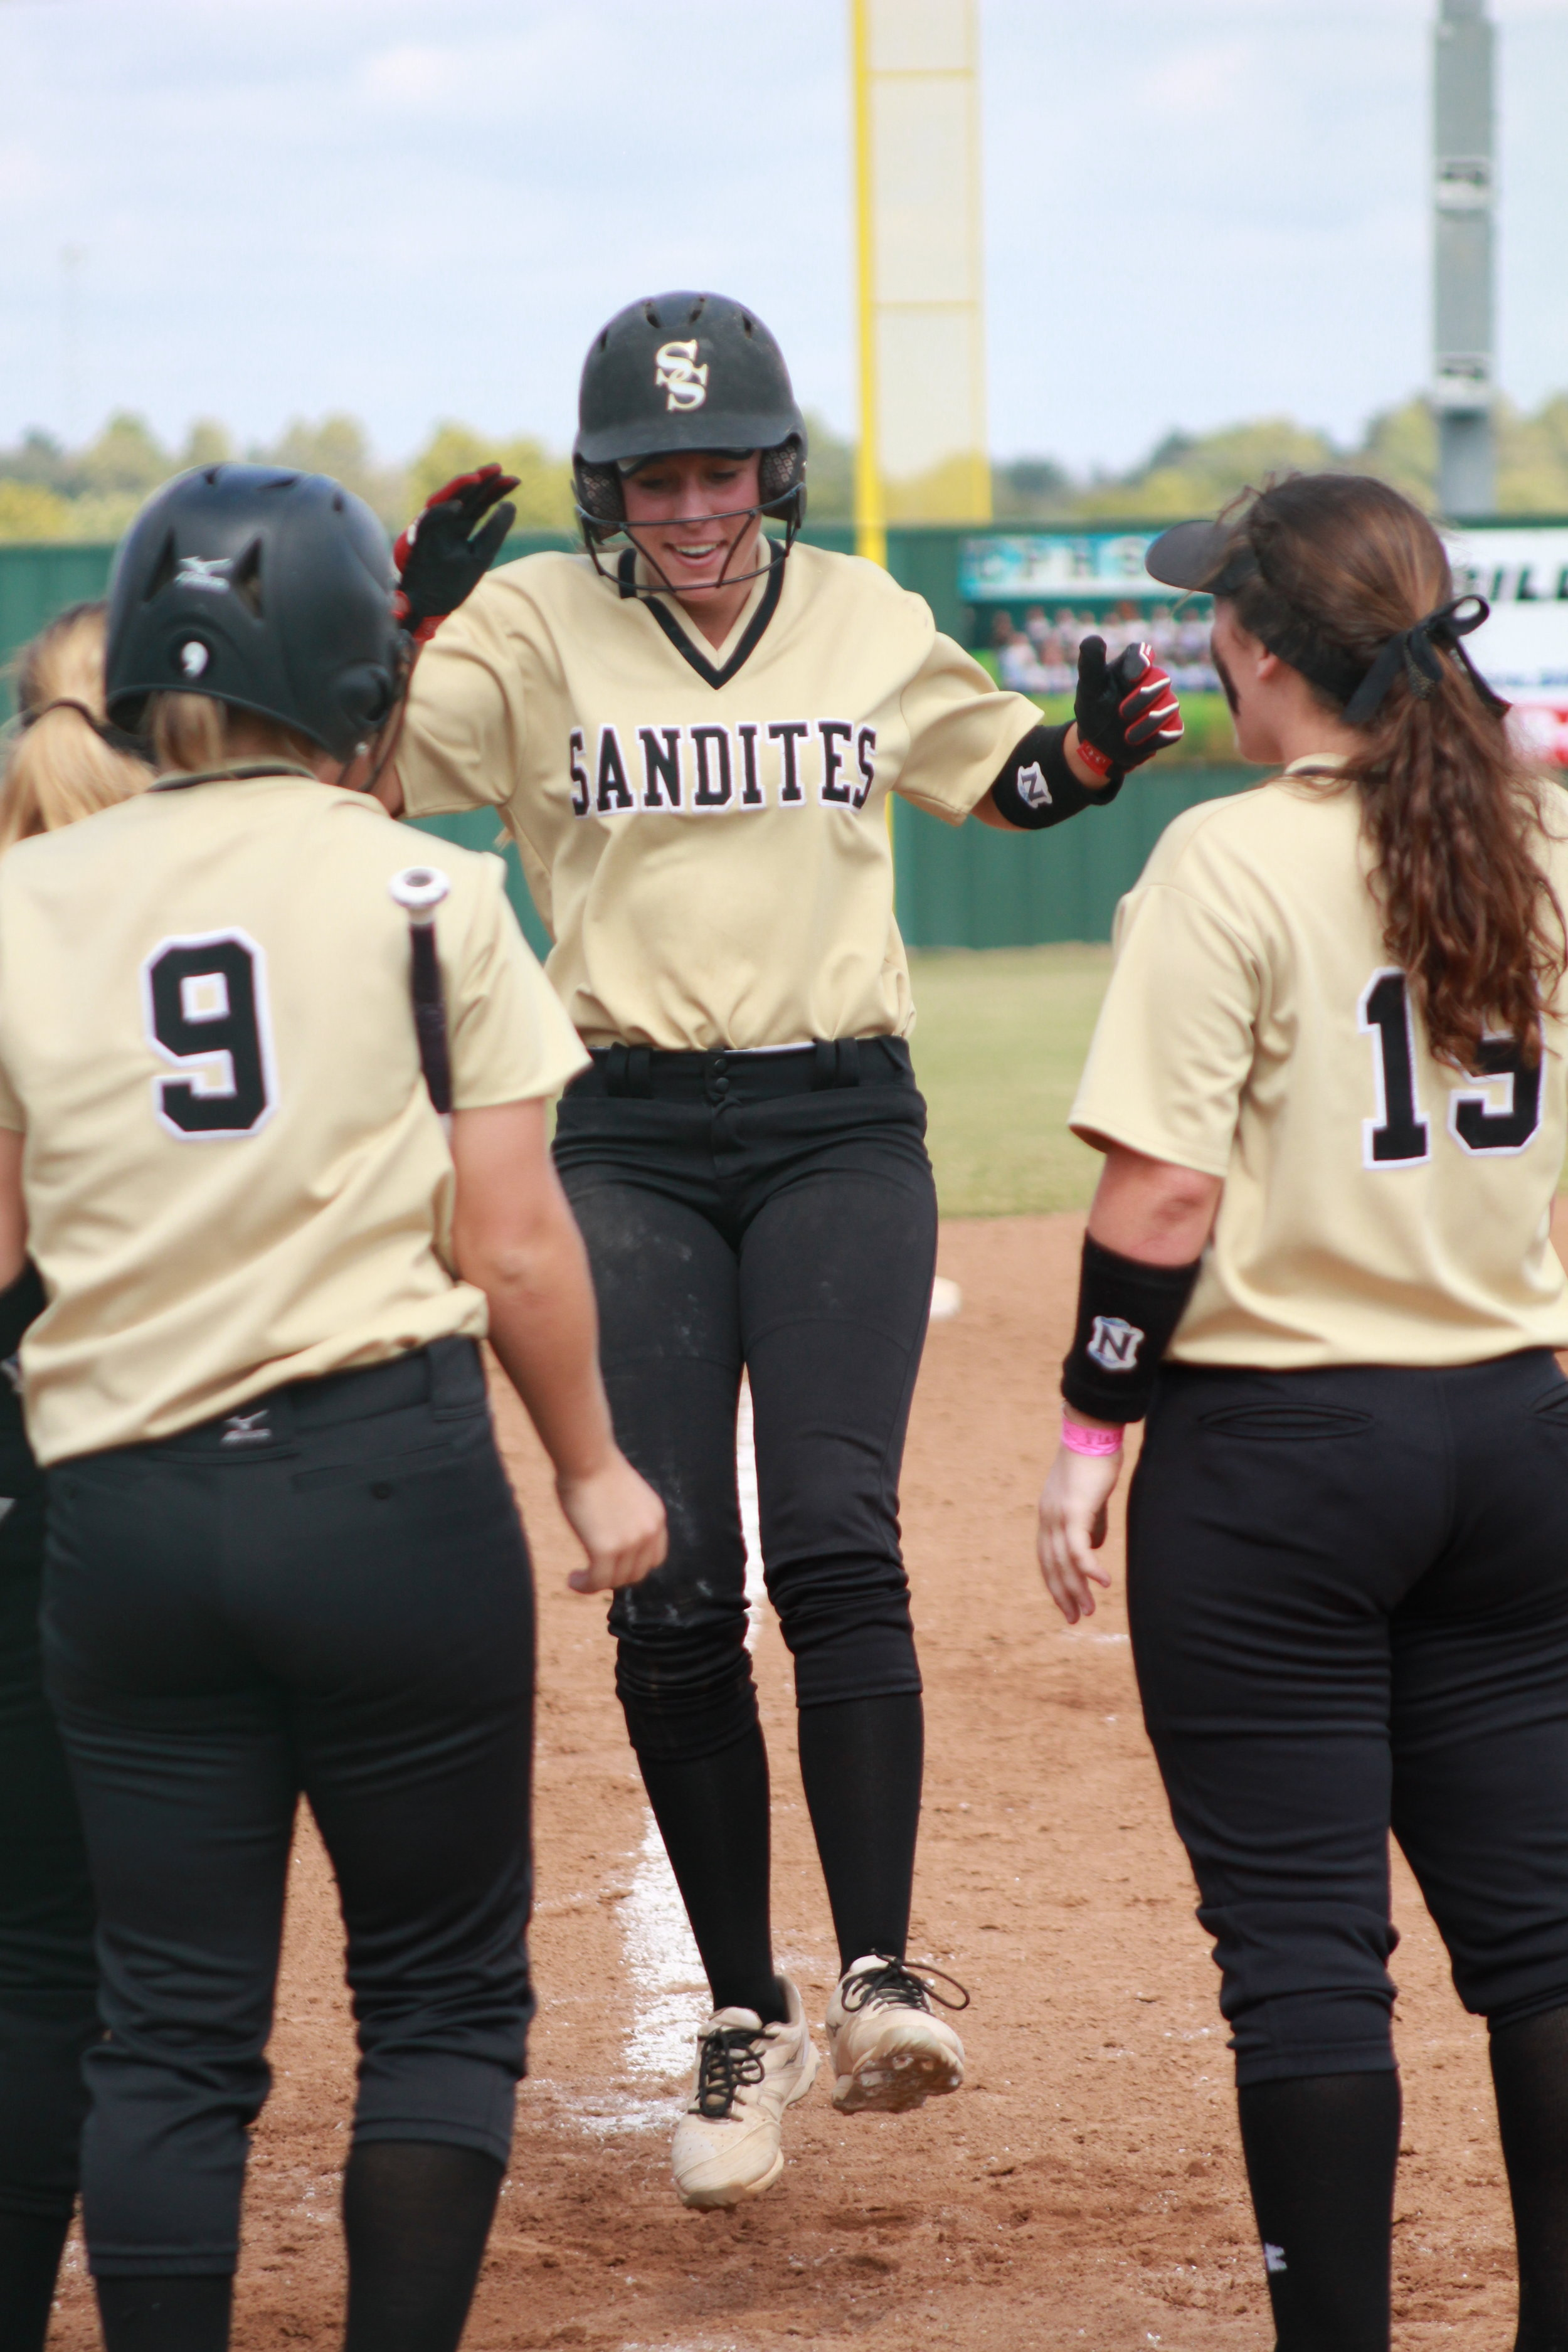 """Elizabeth """"Lizard"""" Luttrell hit her second career home run in an 8-0 victory over Claremore. (Photo: Scott Emigh)"""